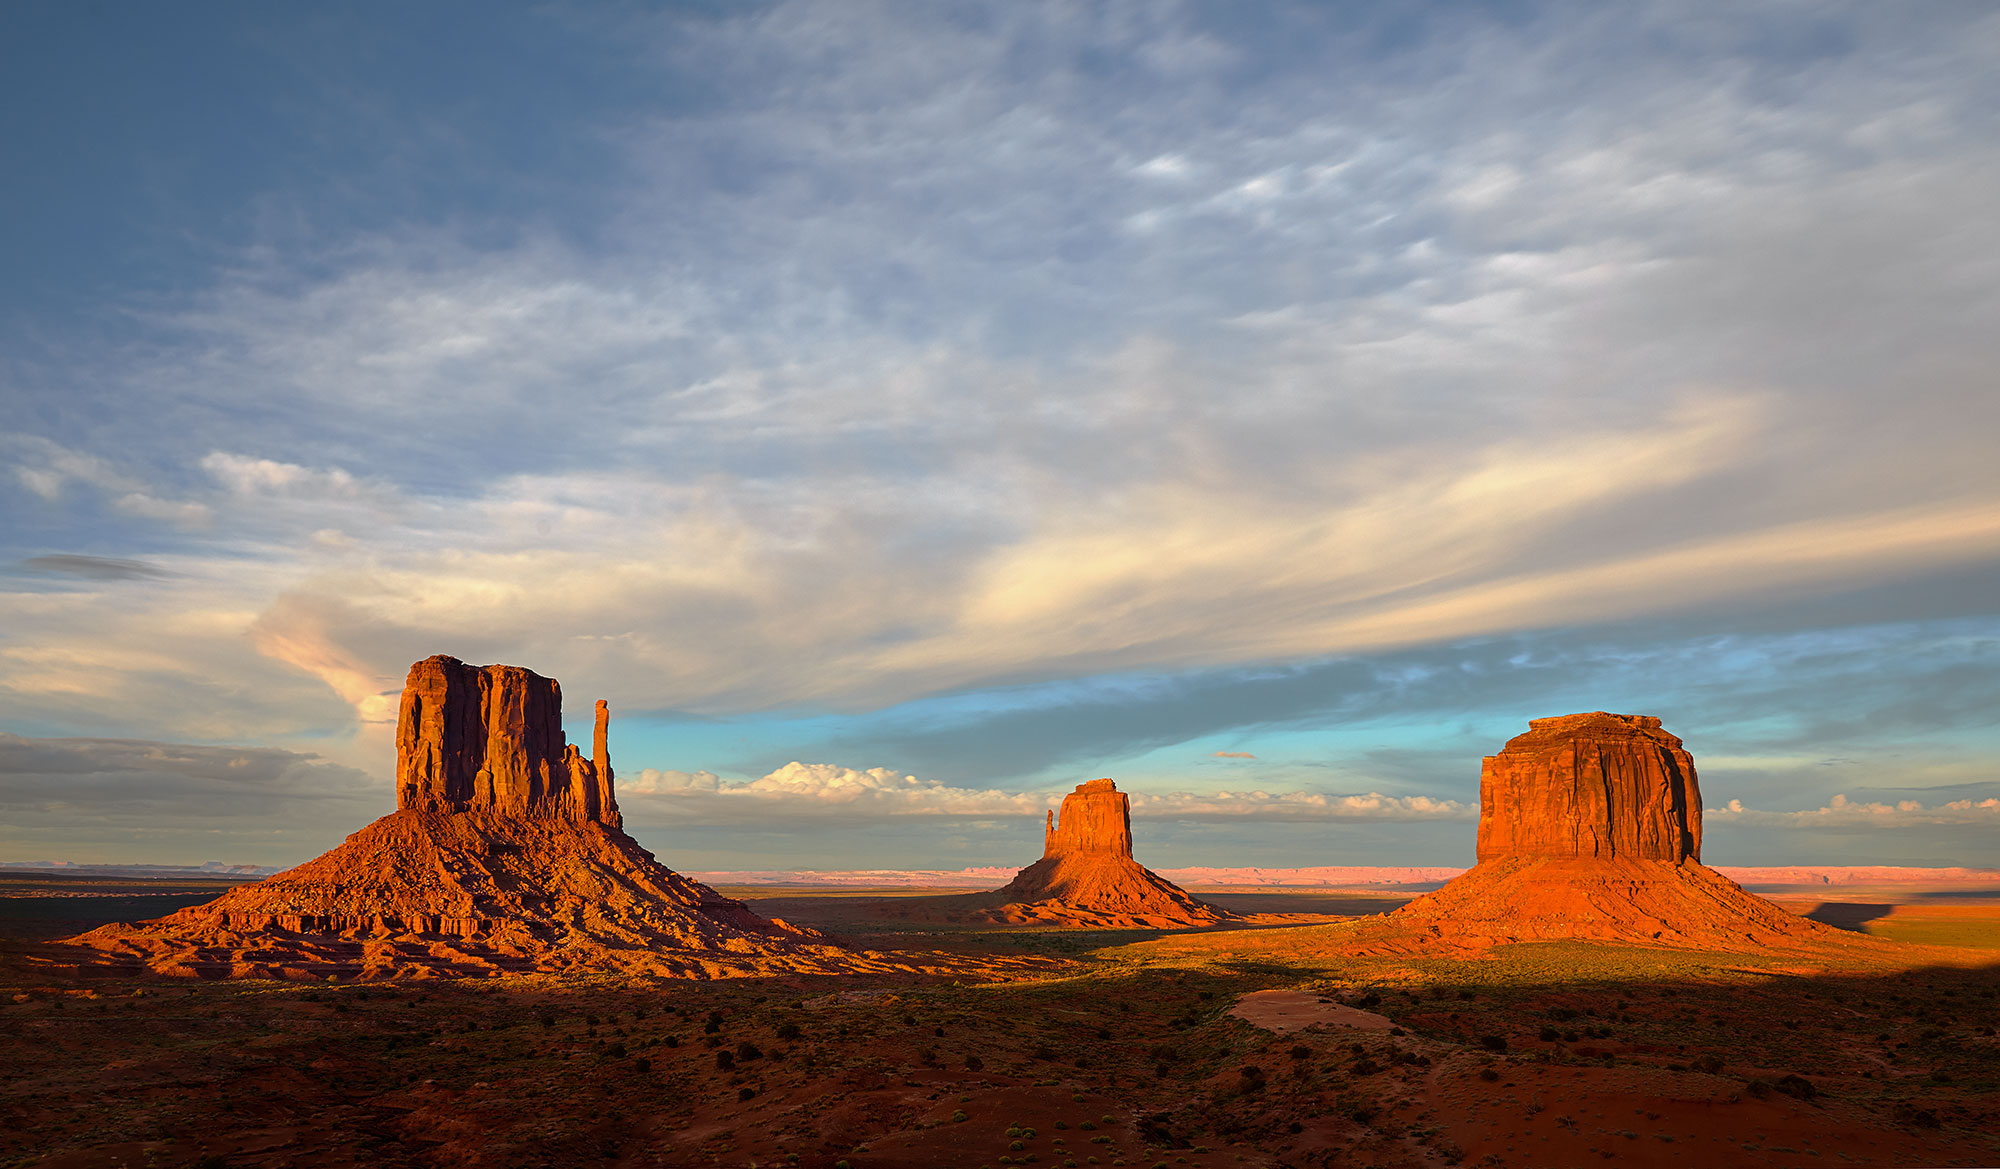 Monument Valley, UT -  Stephen Denton Photography, Los Angeles, California based interior & hospitality photographer